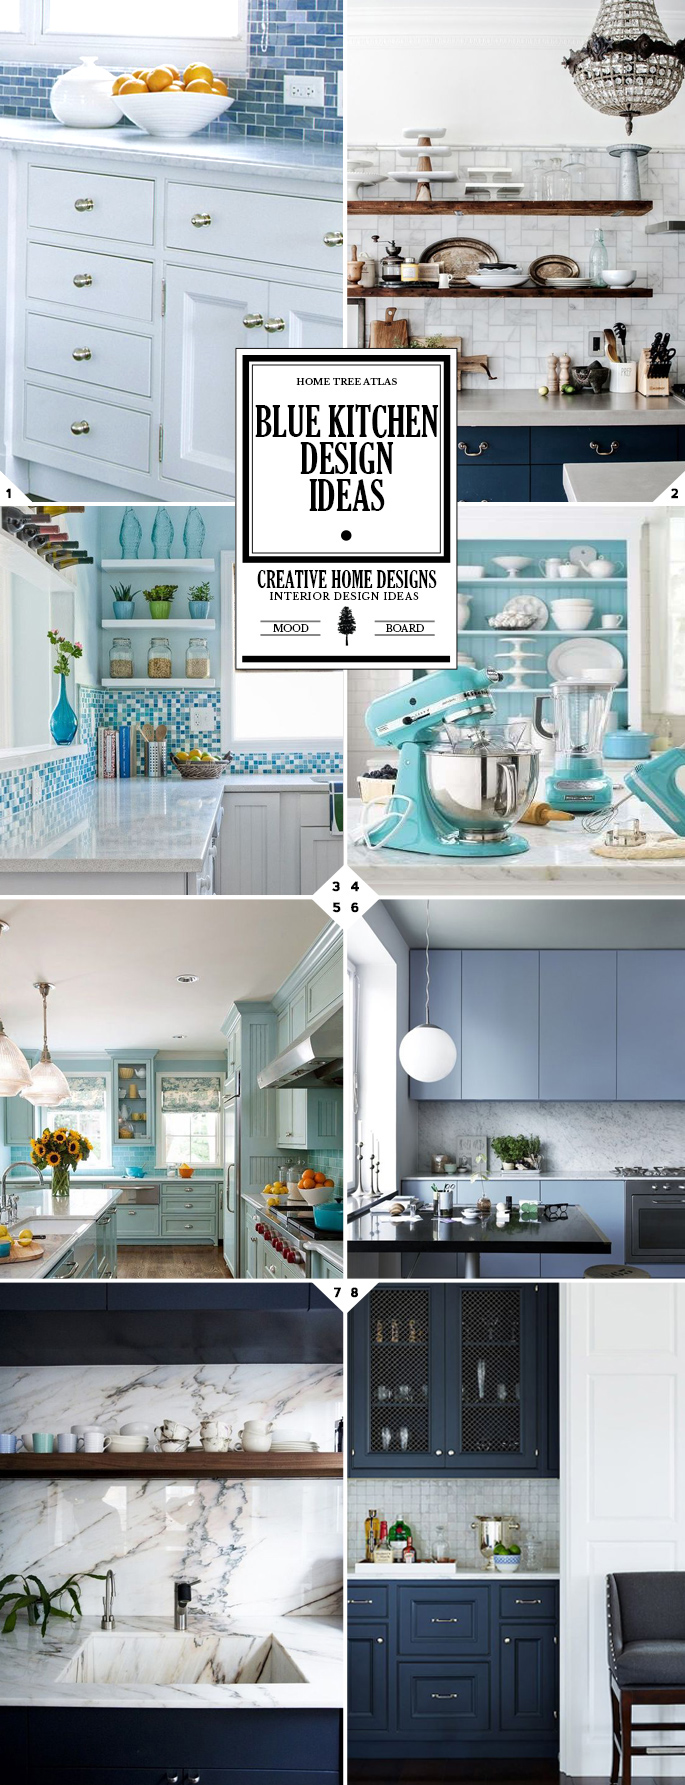 Style Guide: Blue Kitchen Design Ideas